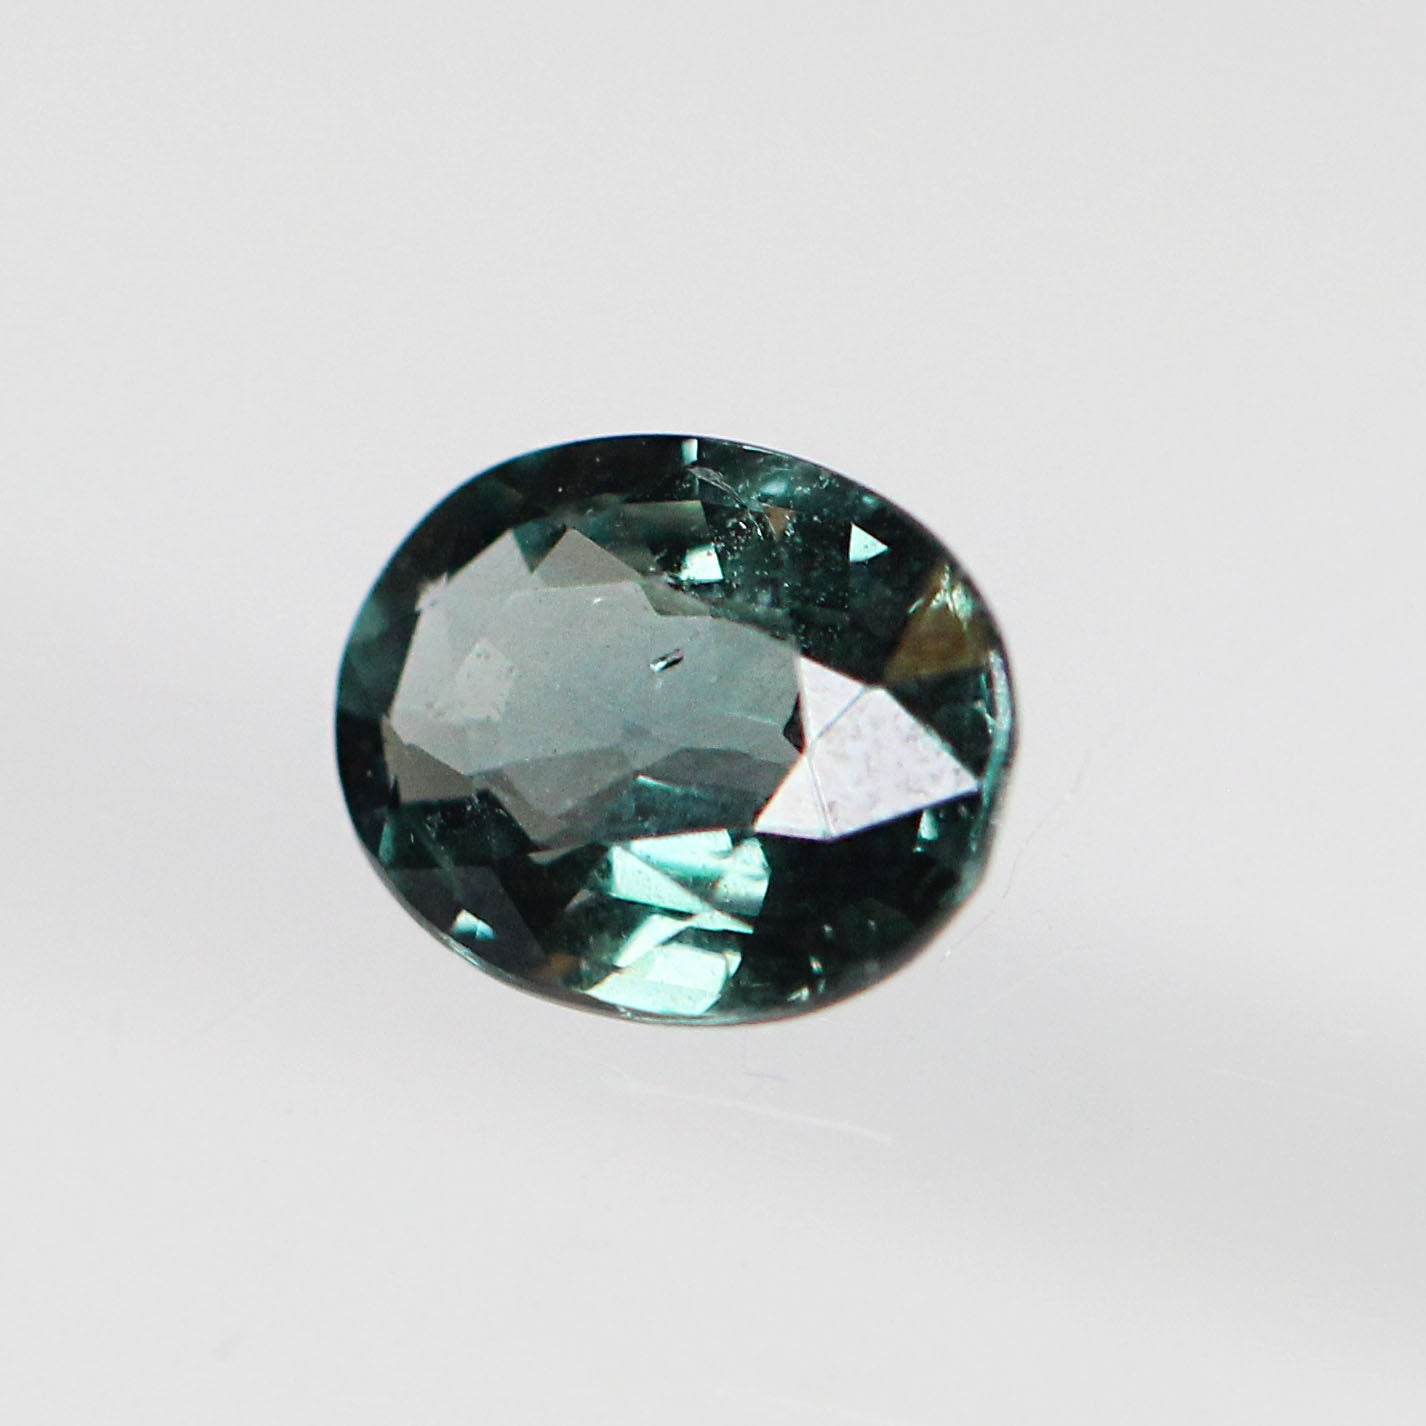 1.95 Carat Oval Sapphire for Custom Work - Inventory Code OBSAP195 - Celestial Diamonds ® by Midwinter Co.